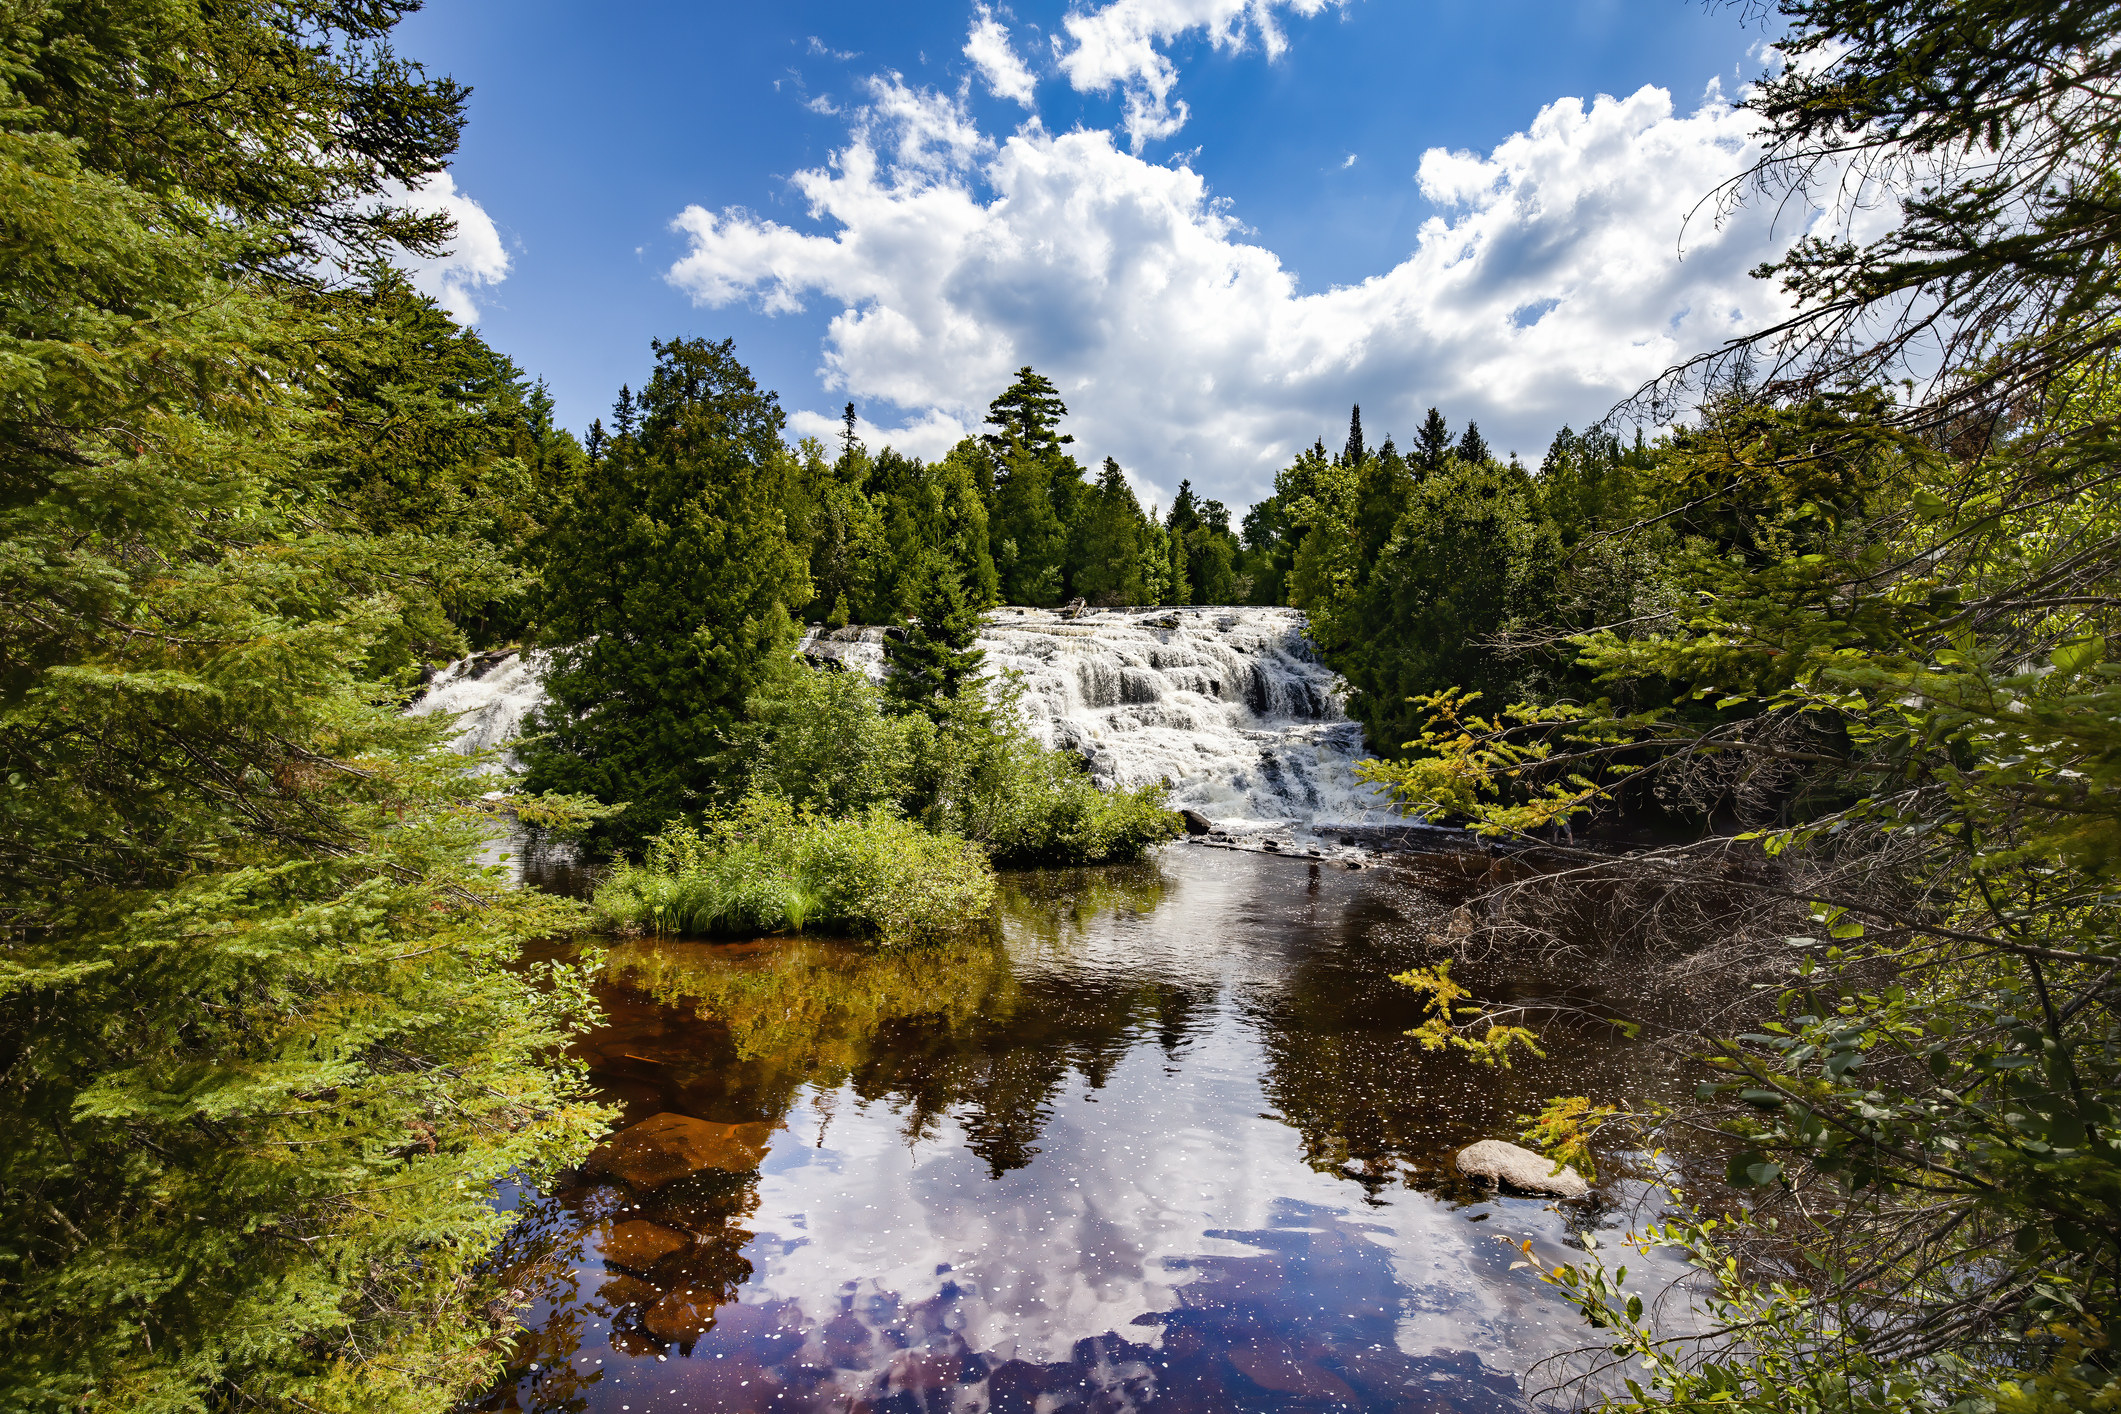 A blue sky with a few fluffy clouds over Bond Falls, which feeds into a still lake and plenty of green trees